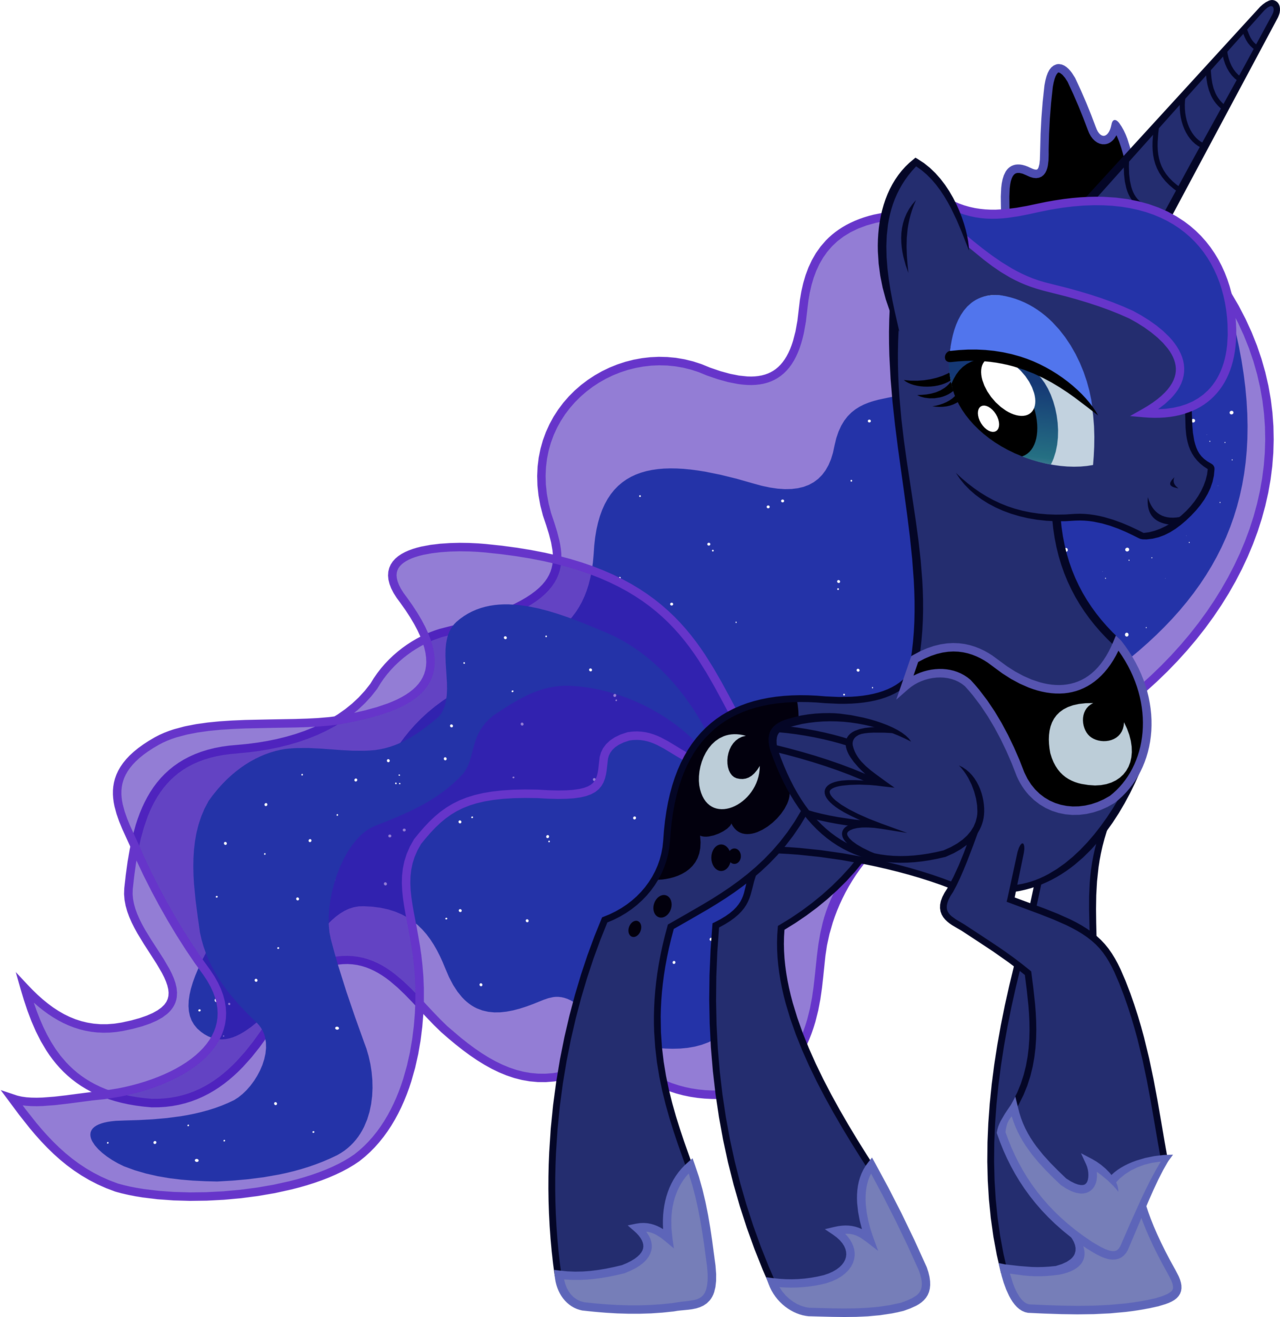 FANMADE_Princess_Luna_transparent_background.png